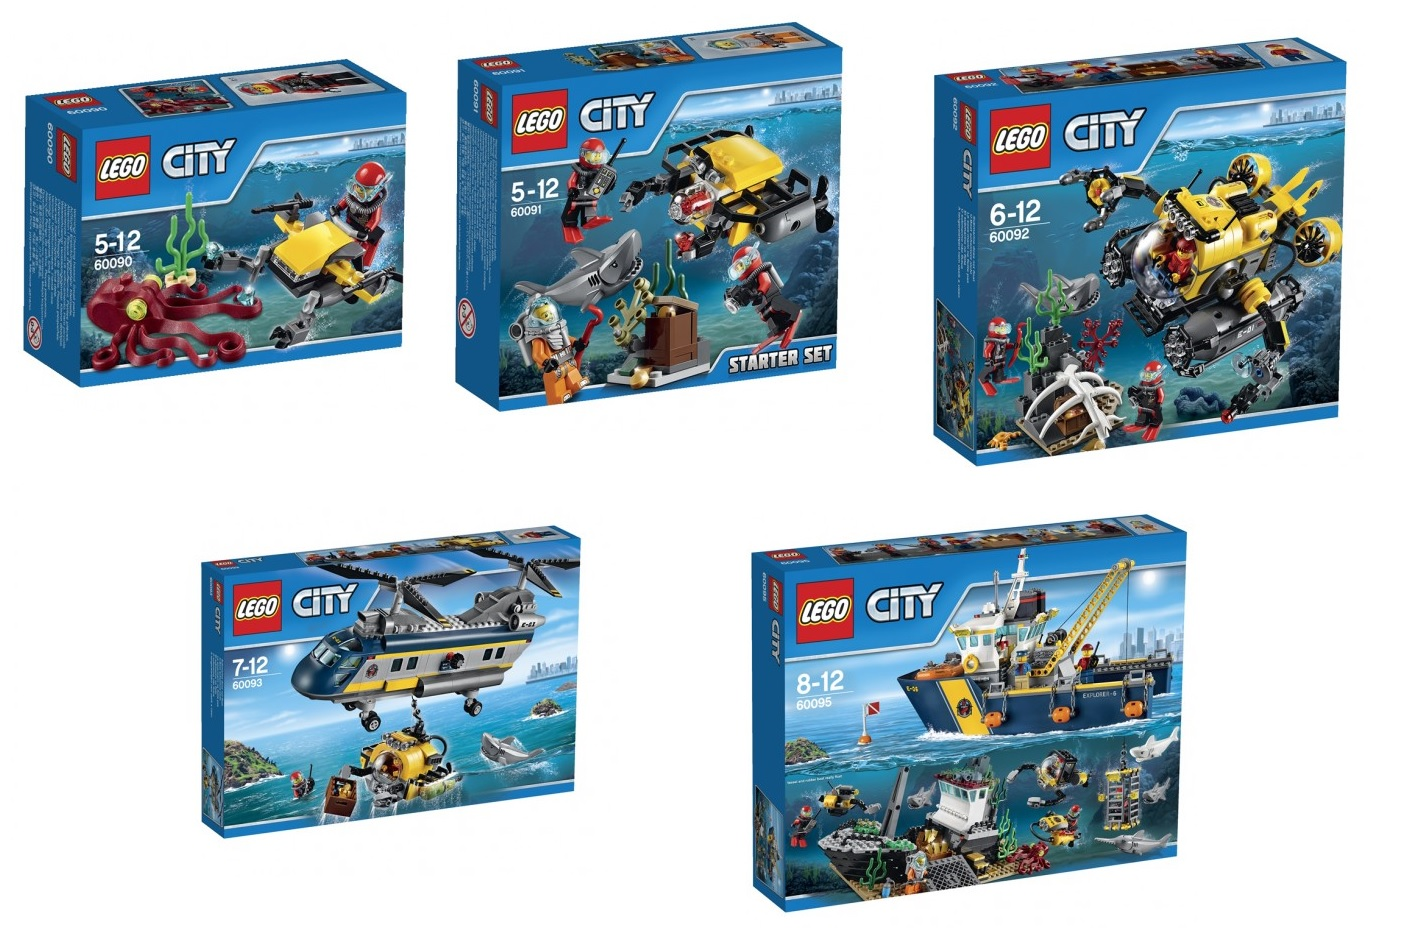 LEGO City 60097 Town Square